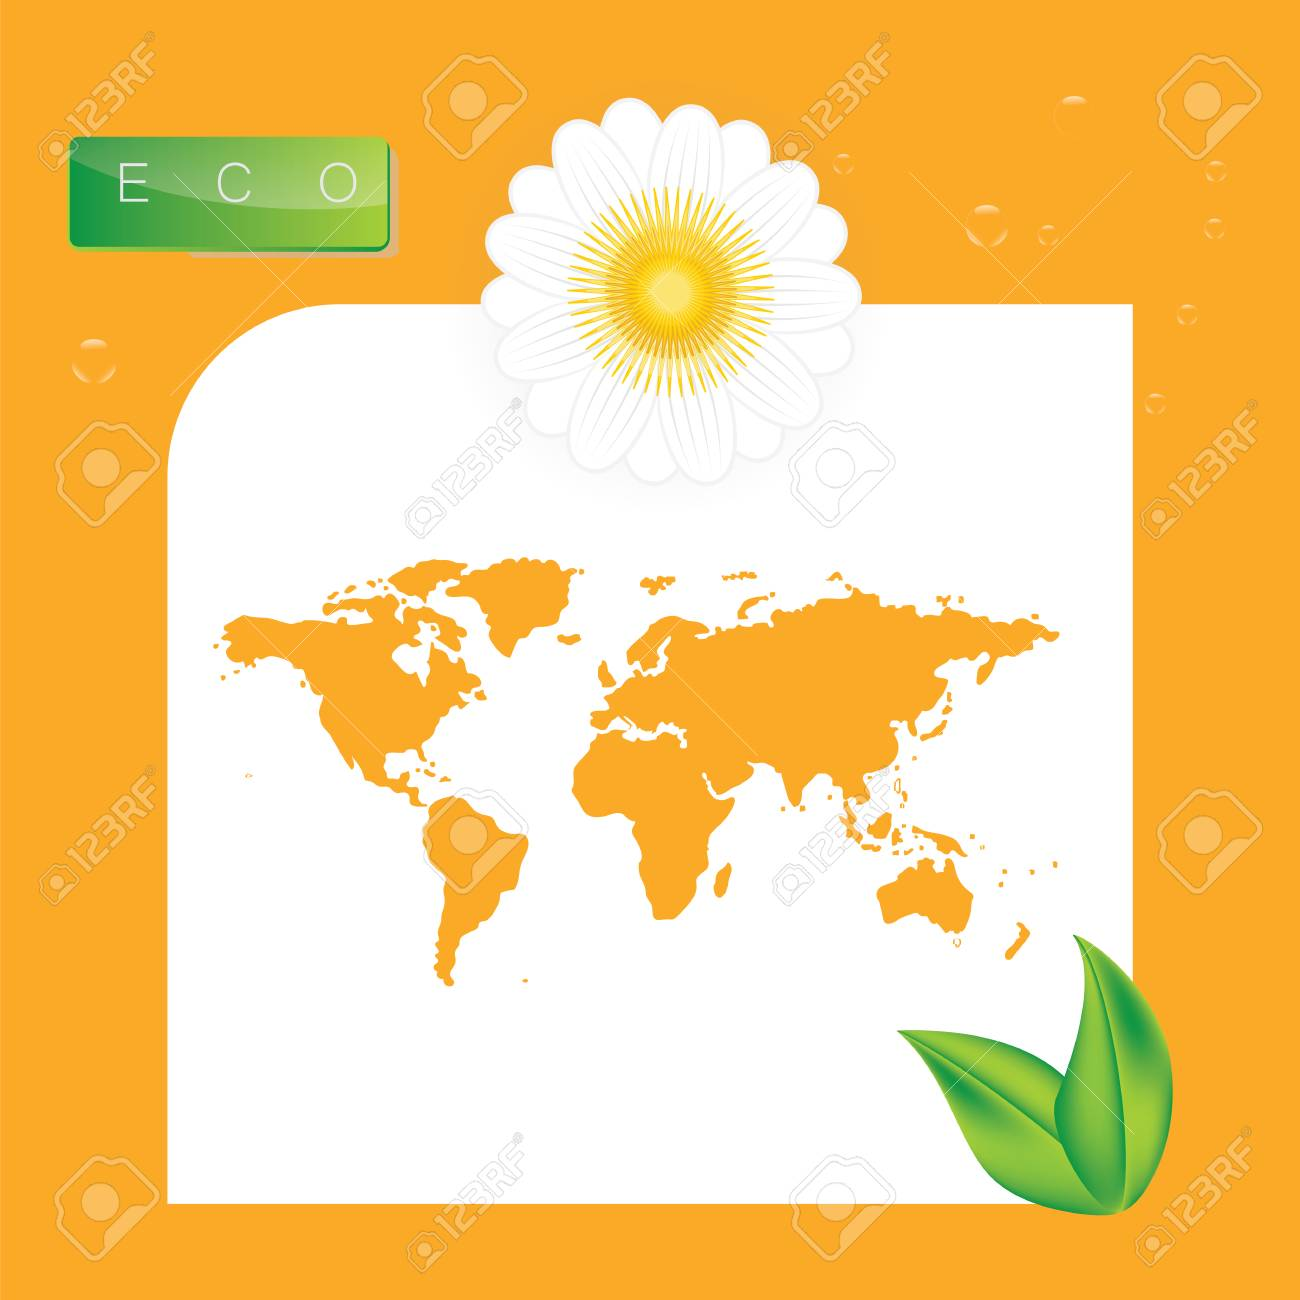 Logo Eco World Map White Flower Green Leaves On A Yellow Background